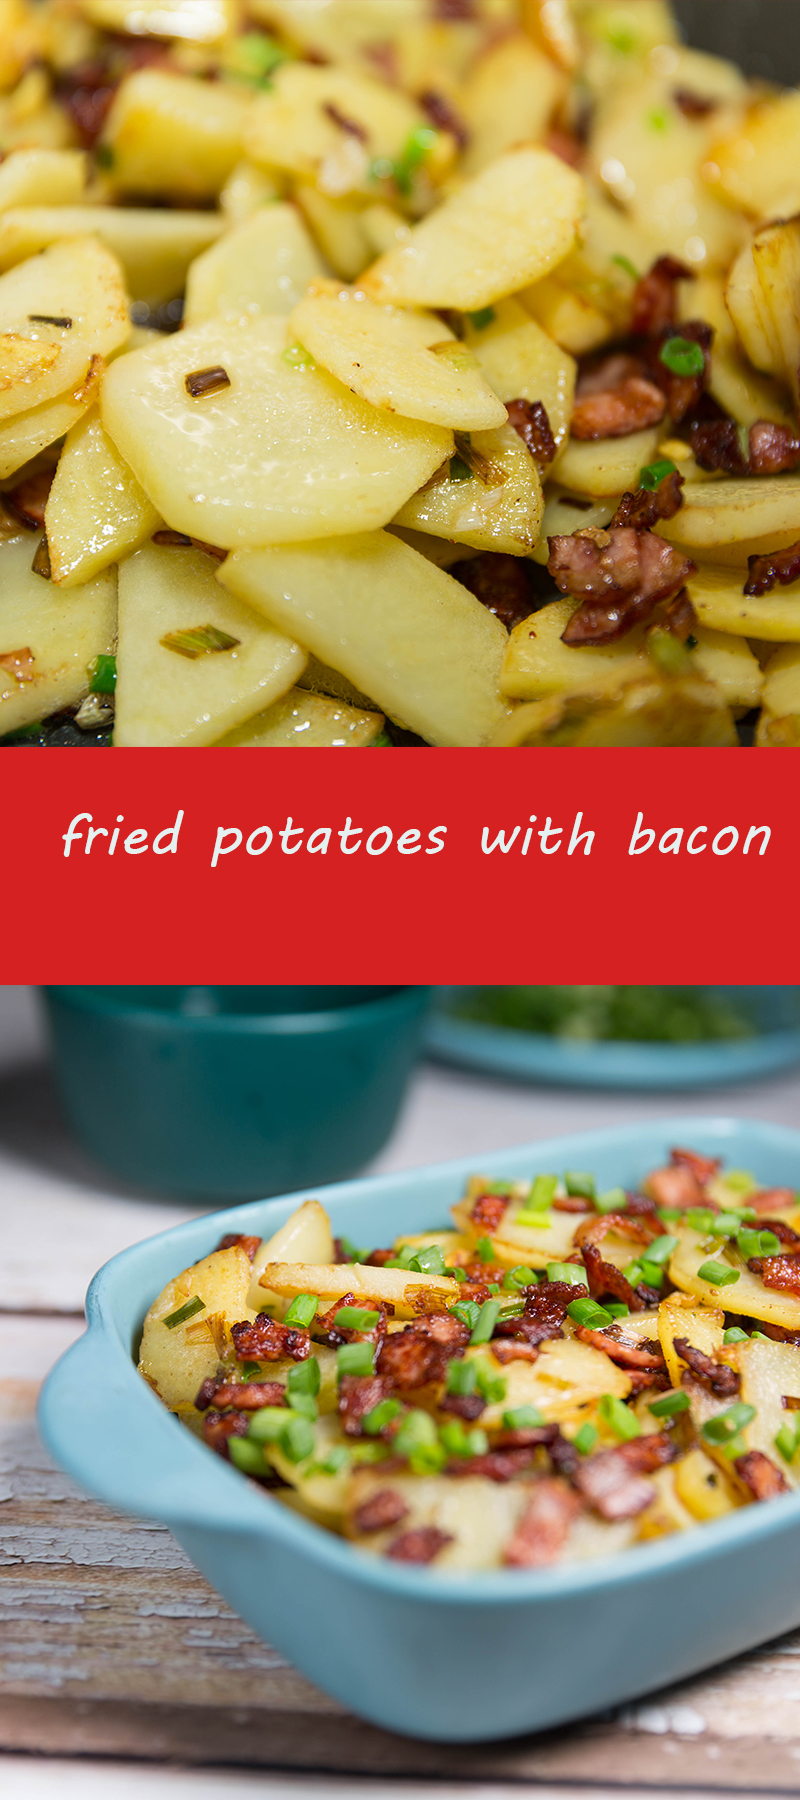 fried potatoes with bacon